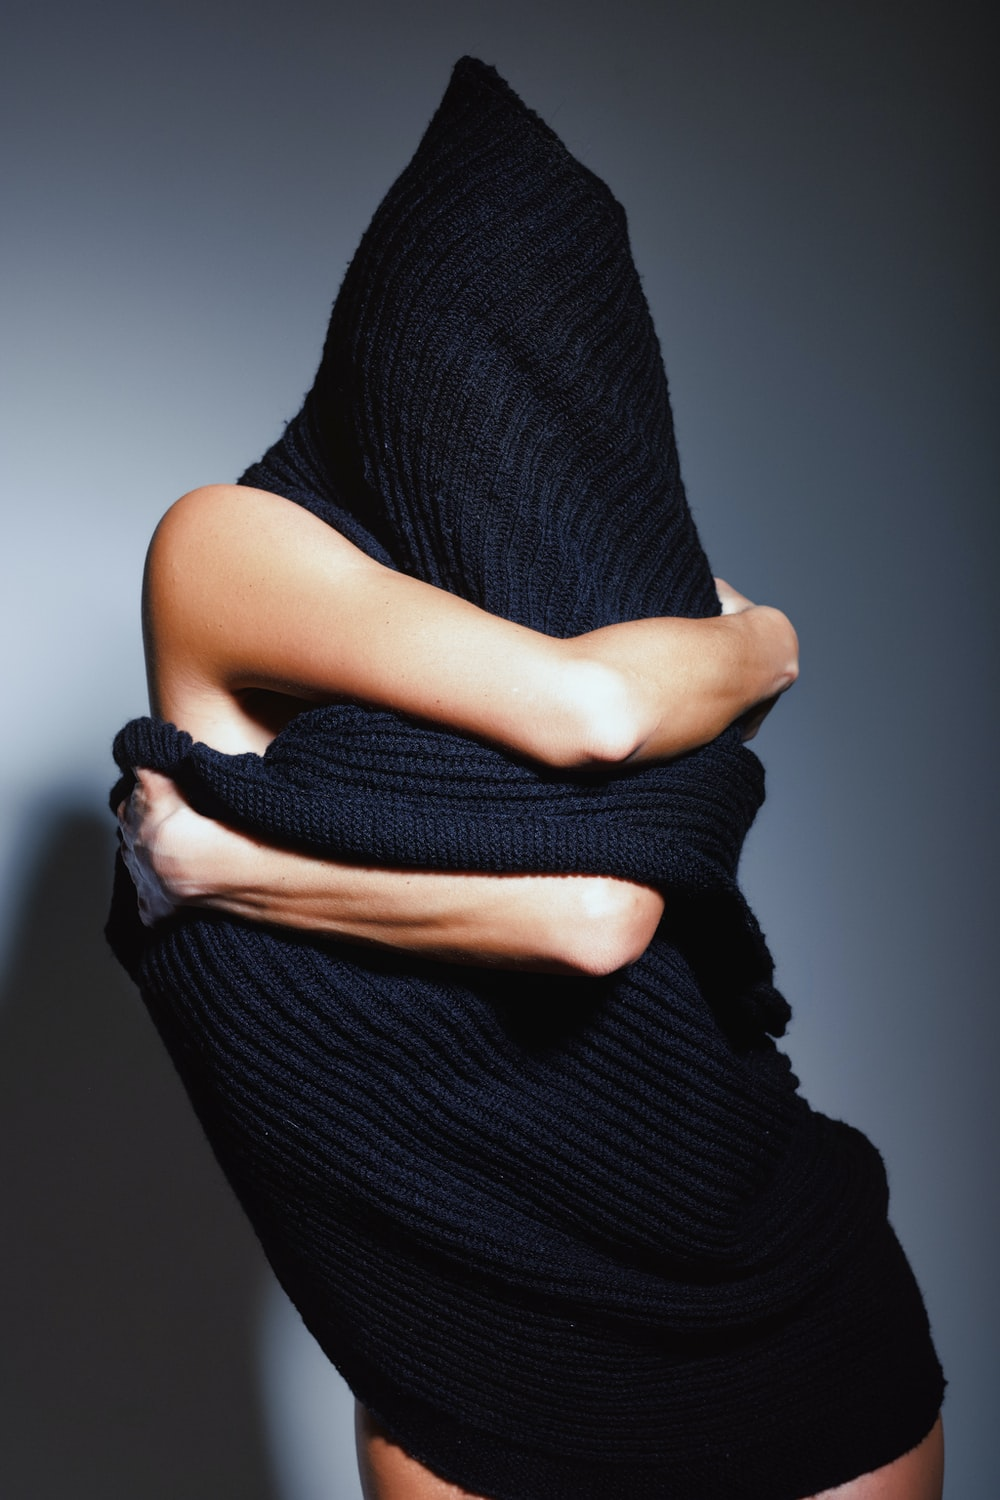 person covering body